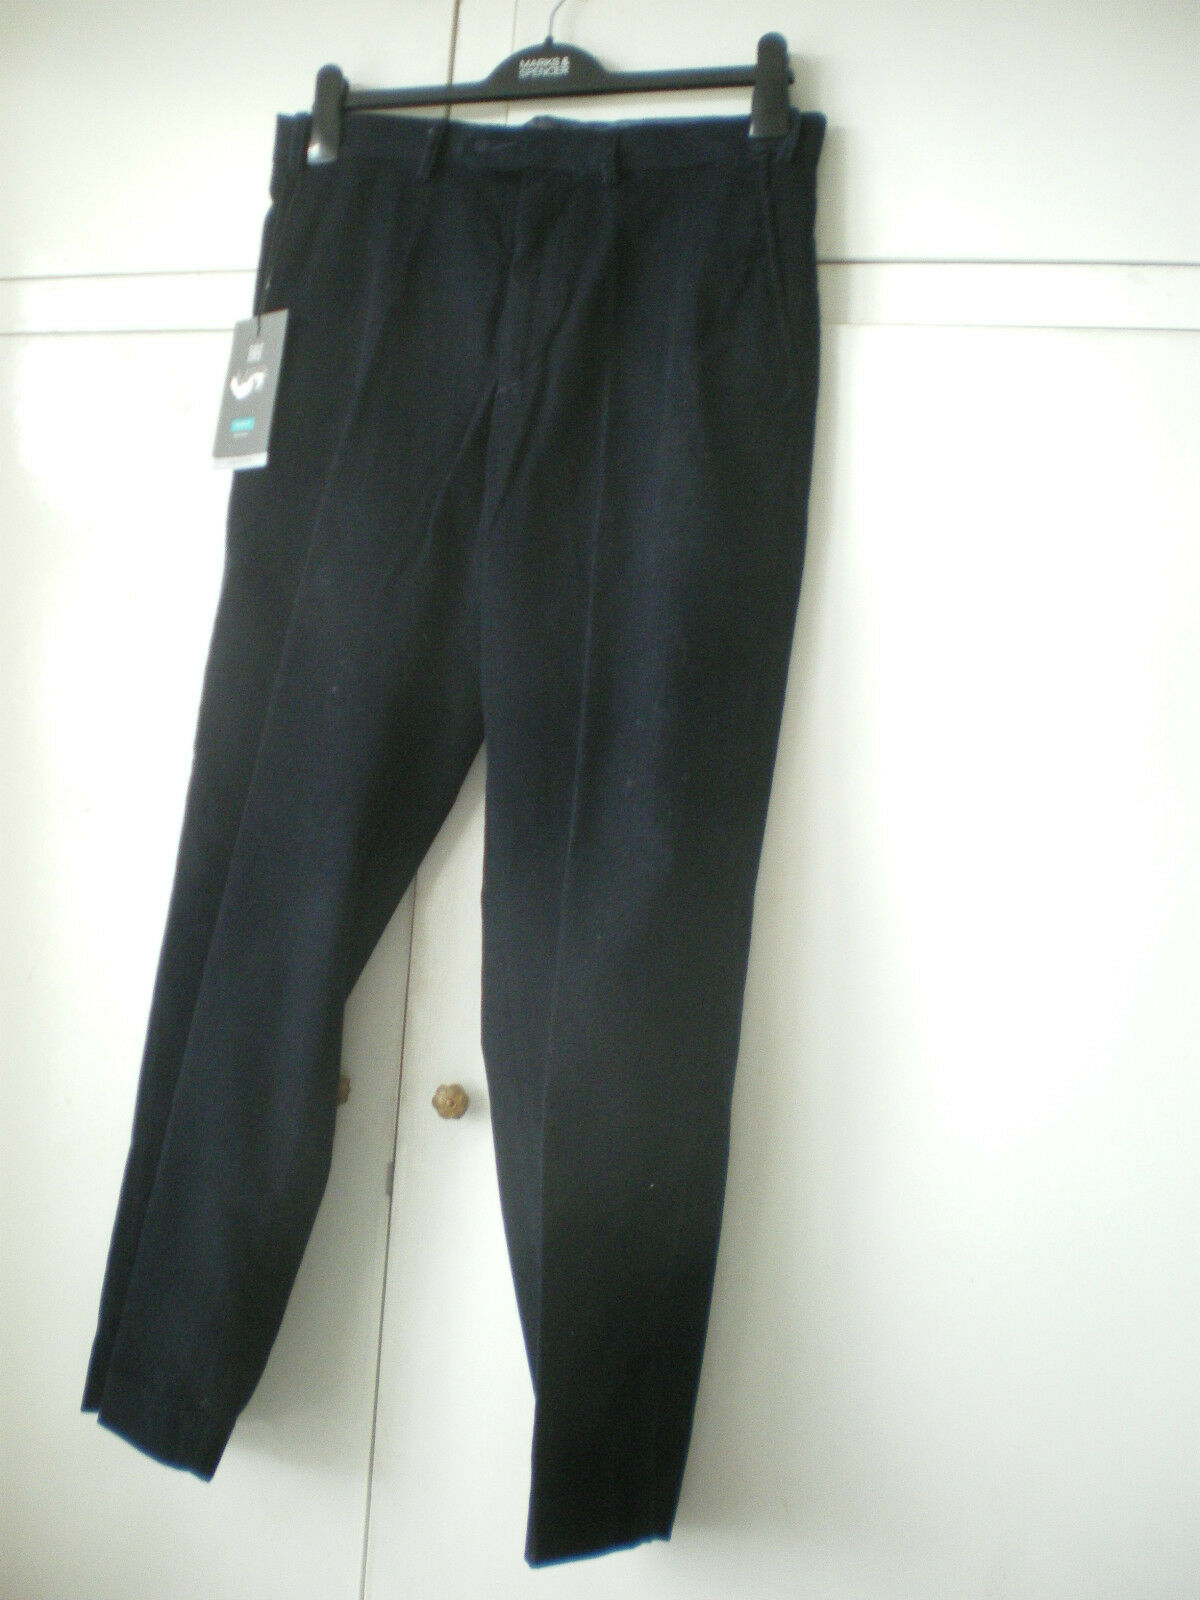 BNWT M&S Mens Collection  trousers navy waist 32 29 regular fit flat front